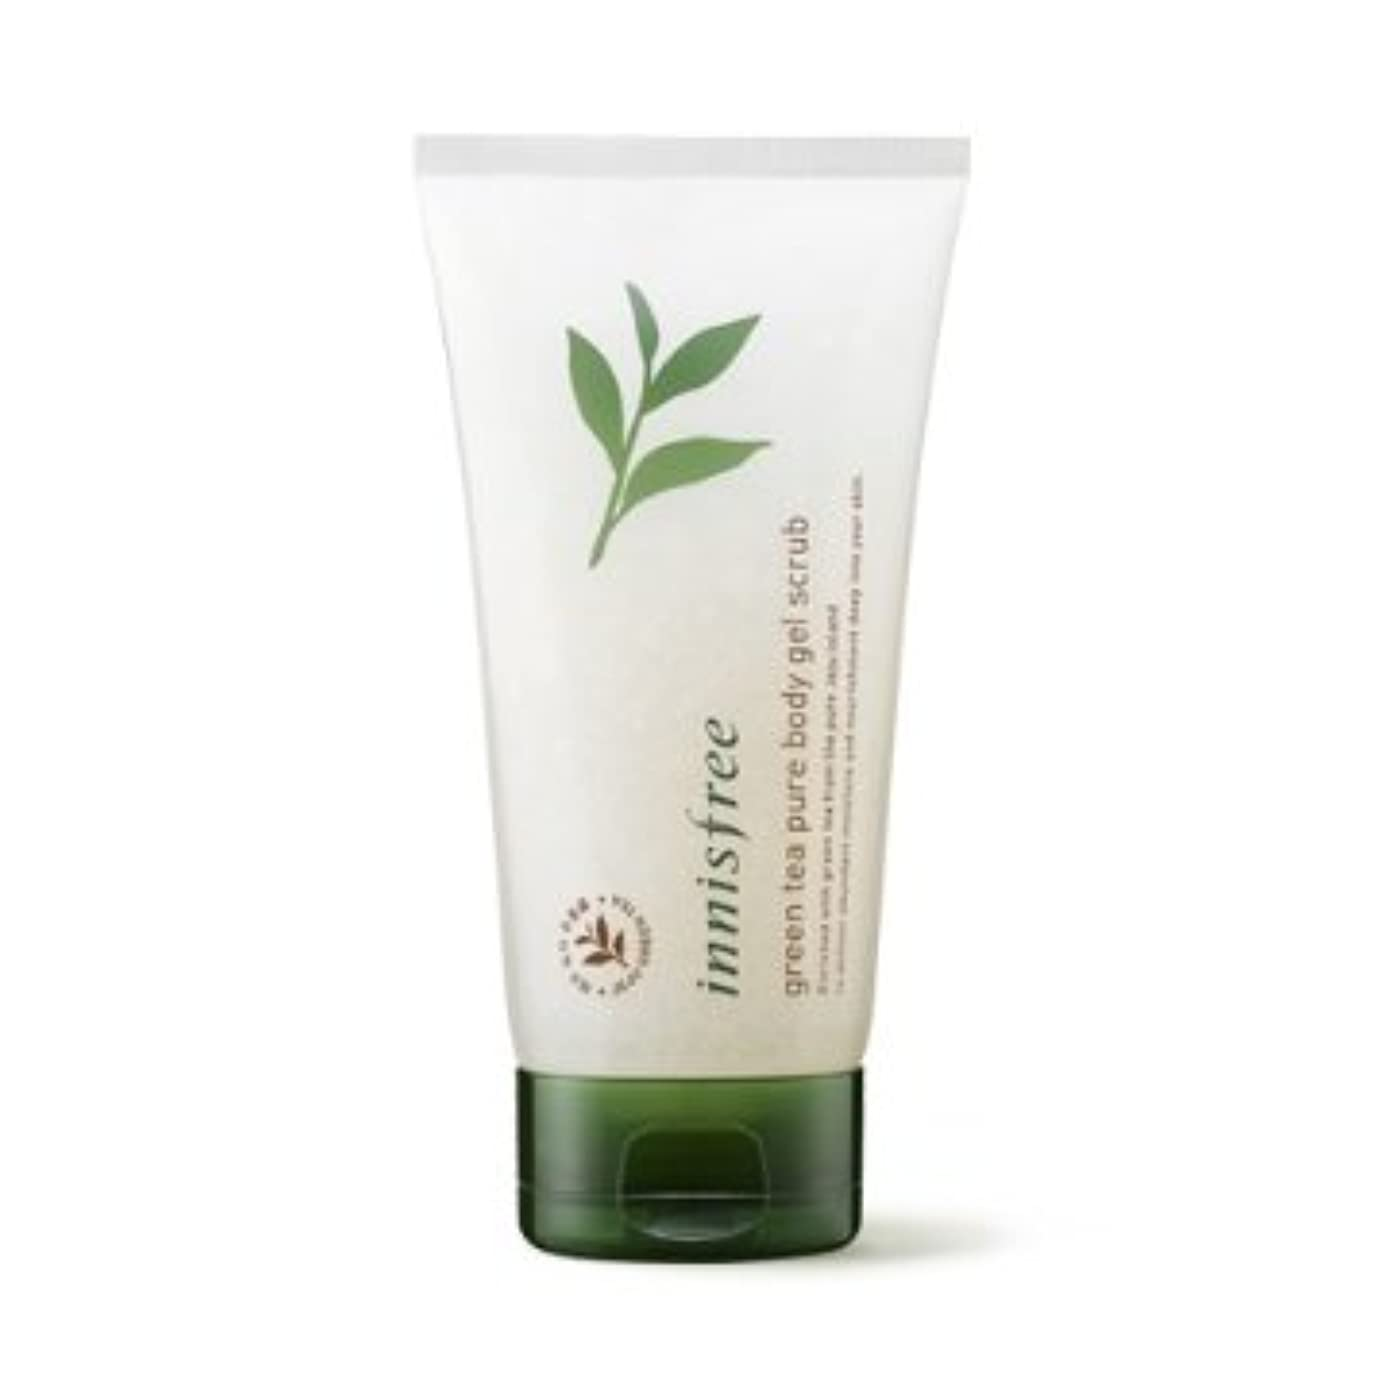 形式モノグラフ農民【イニスフリー】Innisfree green tea pure body gel scrub - 150ml (韓国直送品) (SHOPPINGINSTAGRAM)